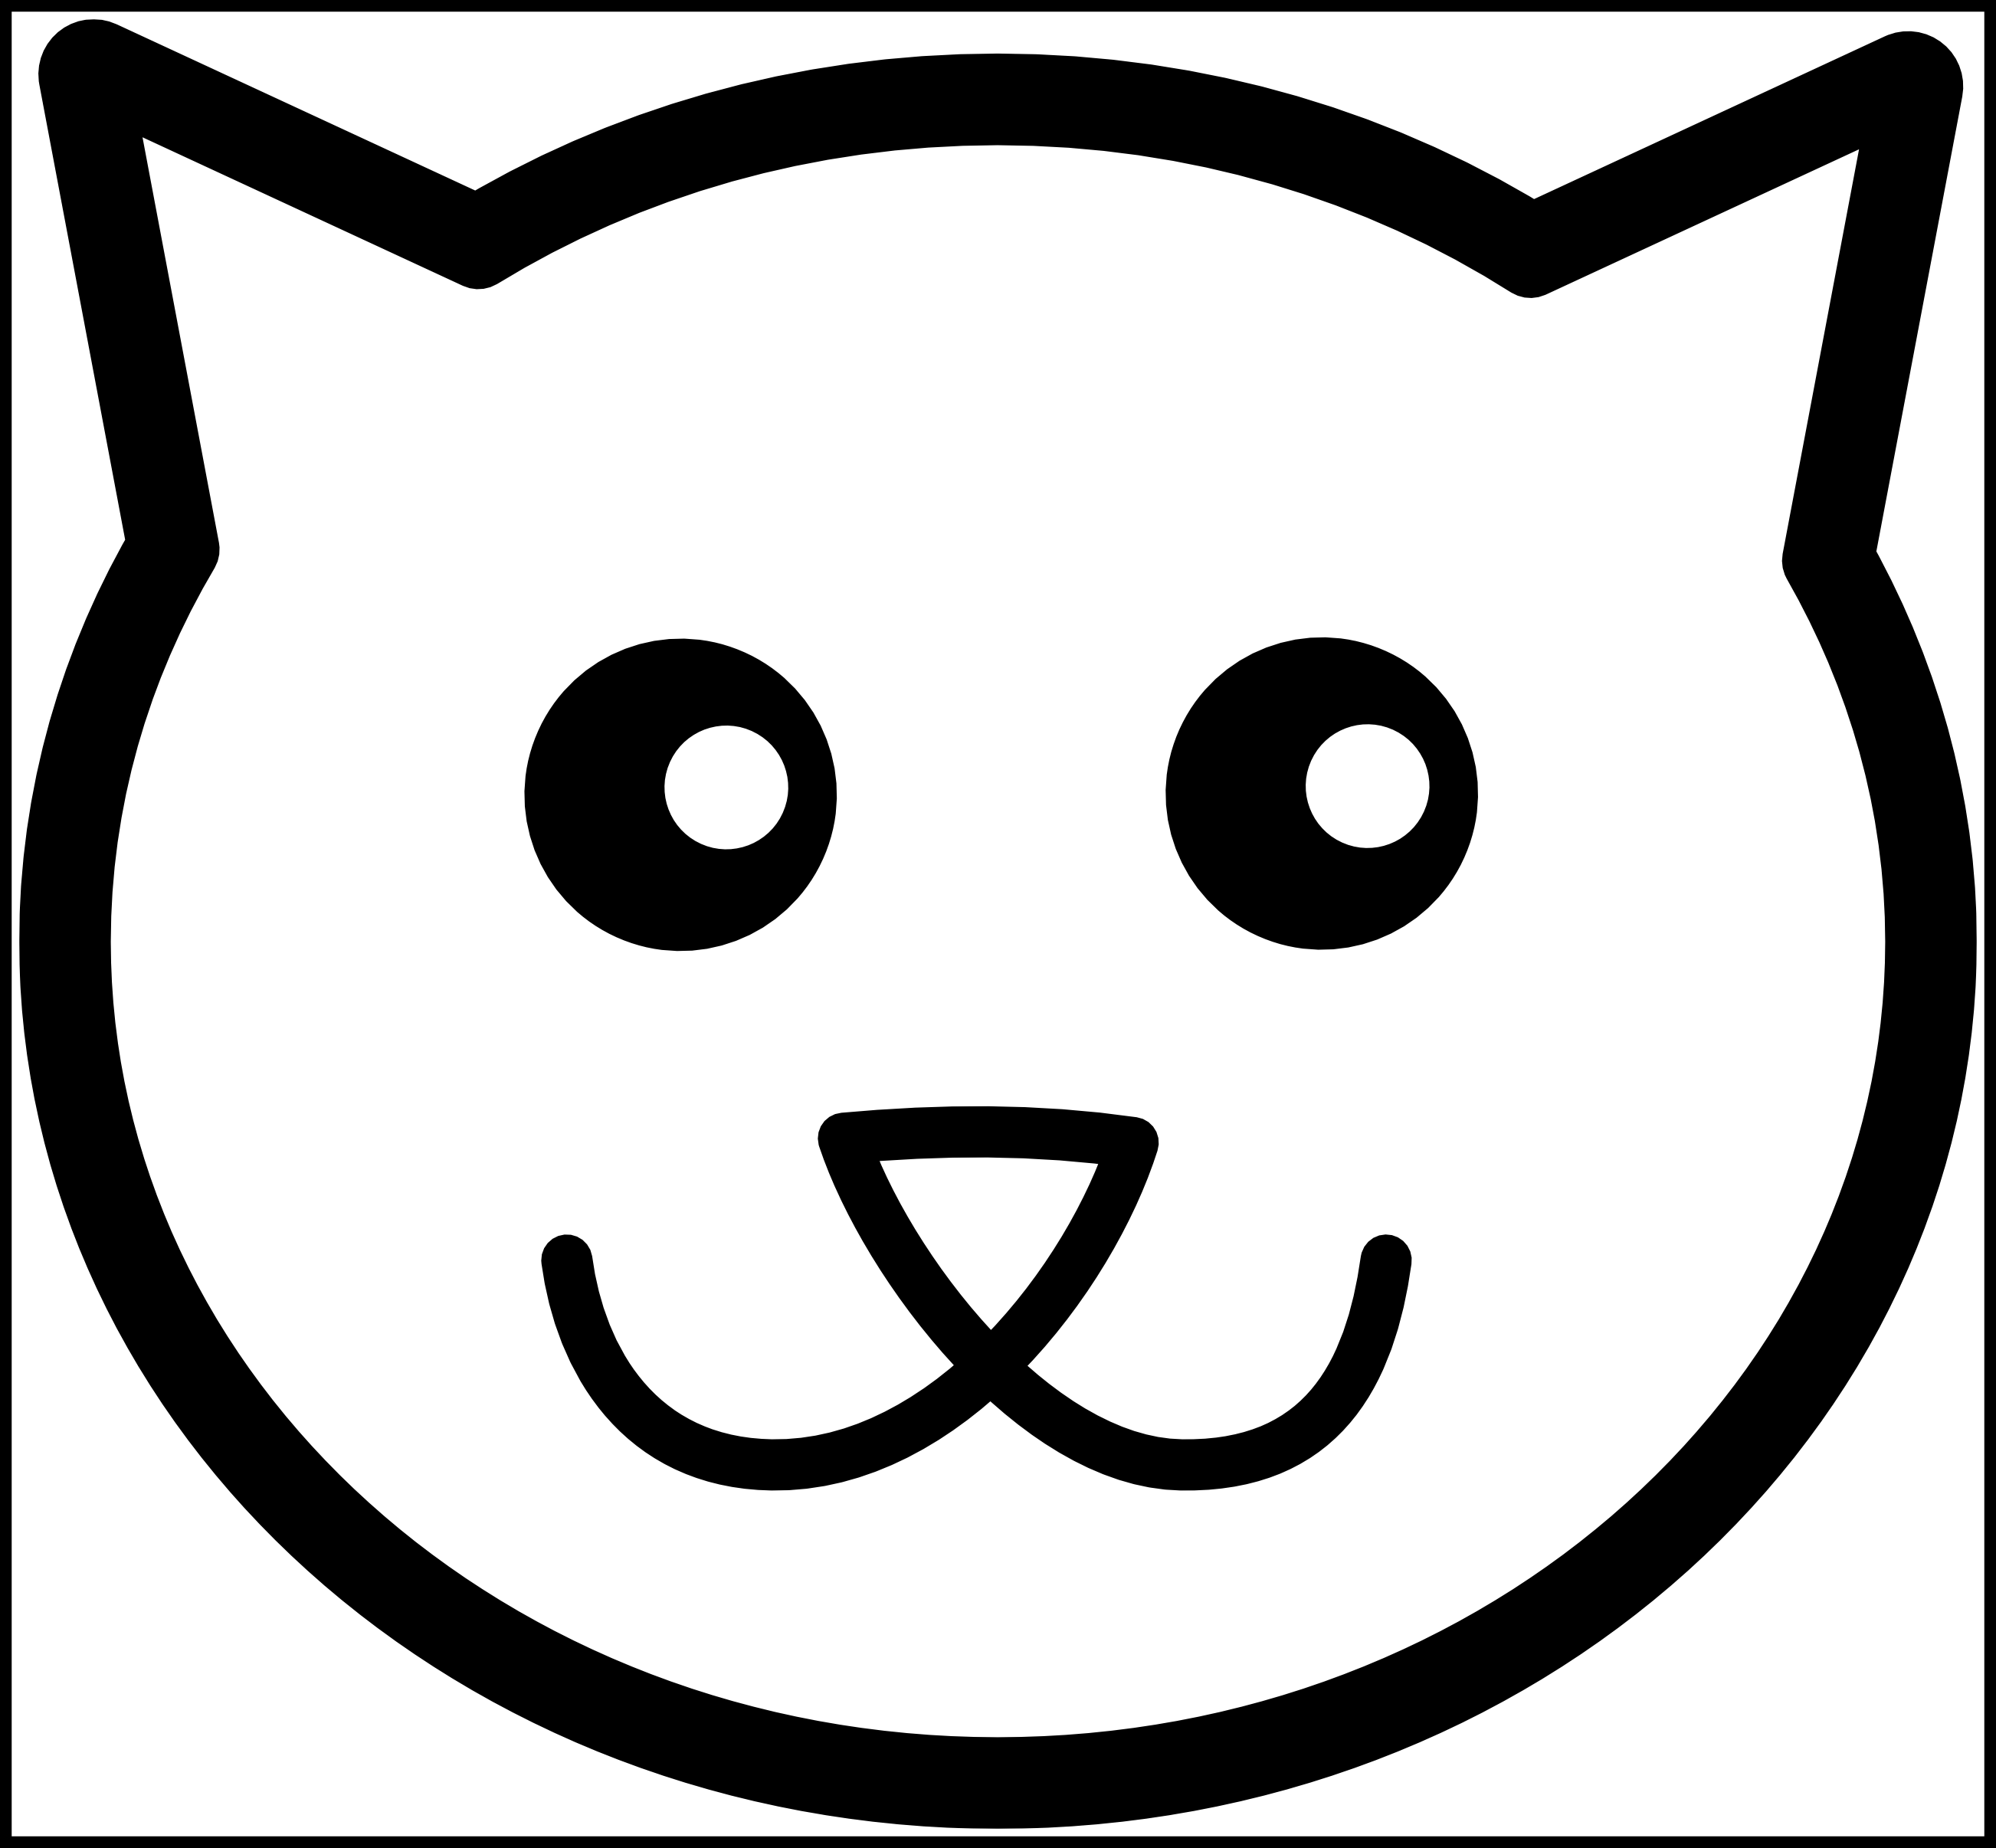 Clipart puppy black and white. Inspiring kitten image pics